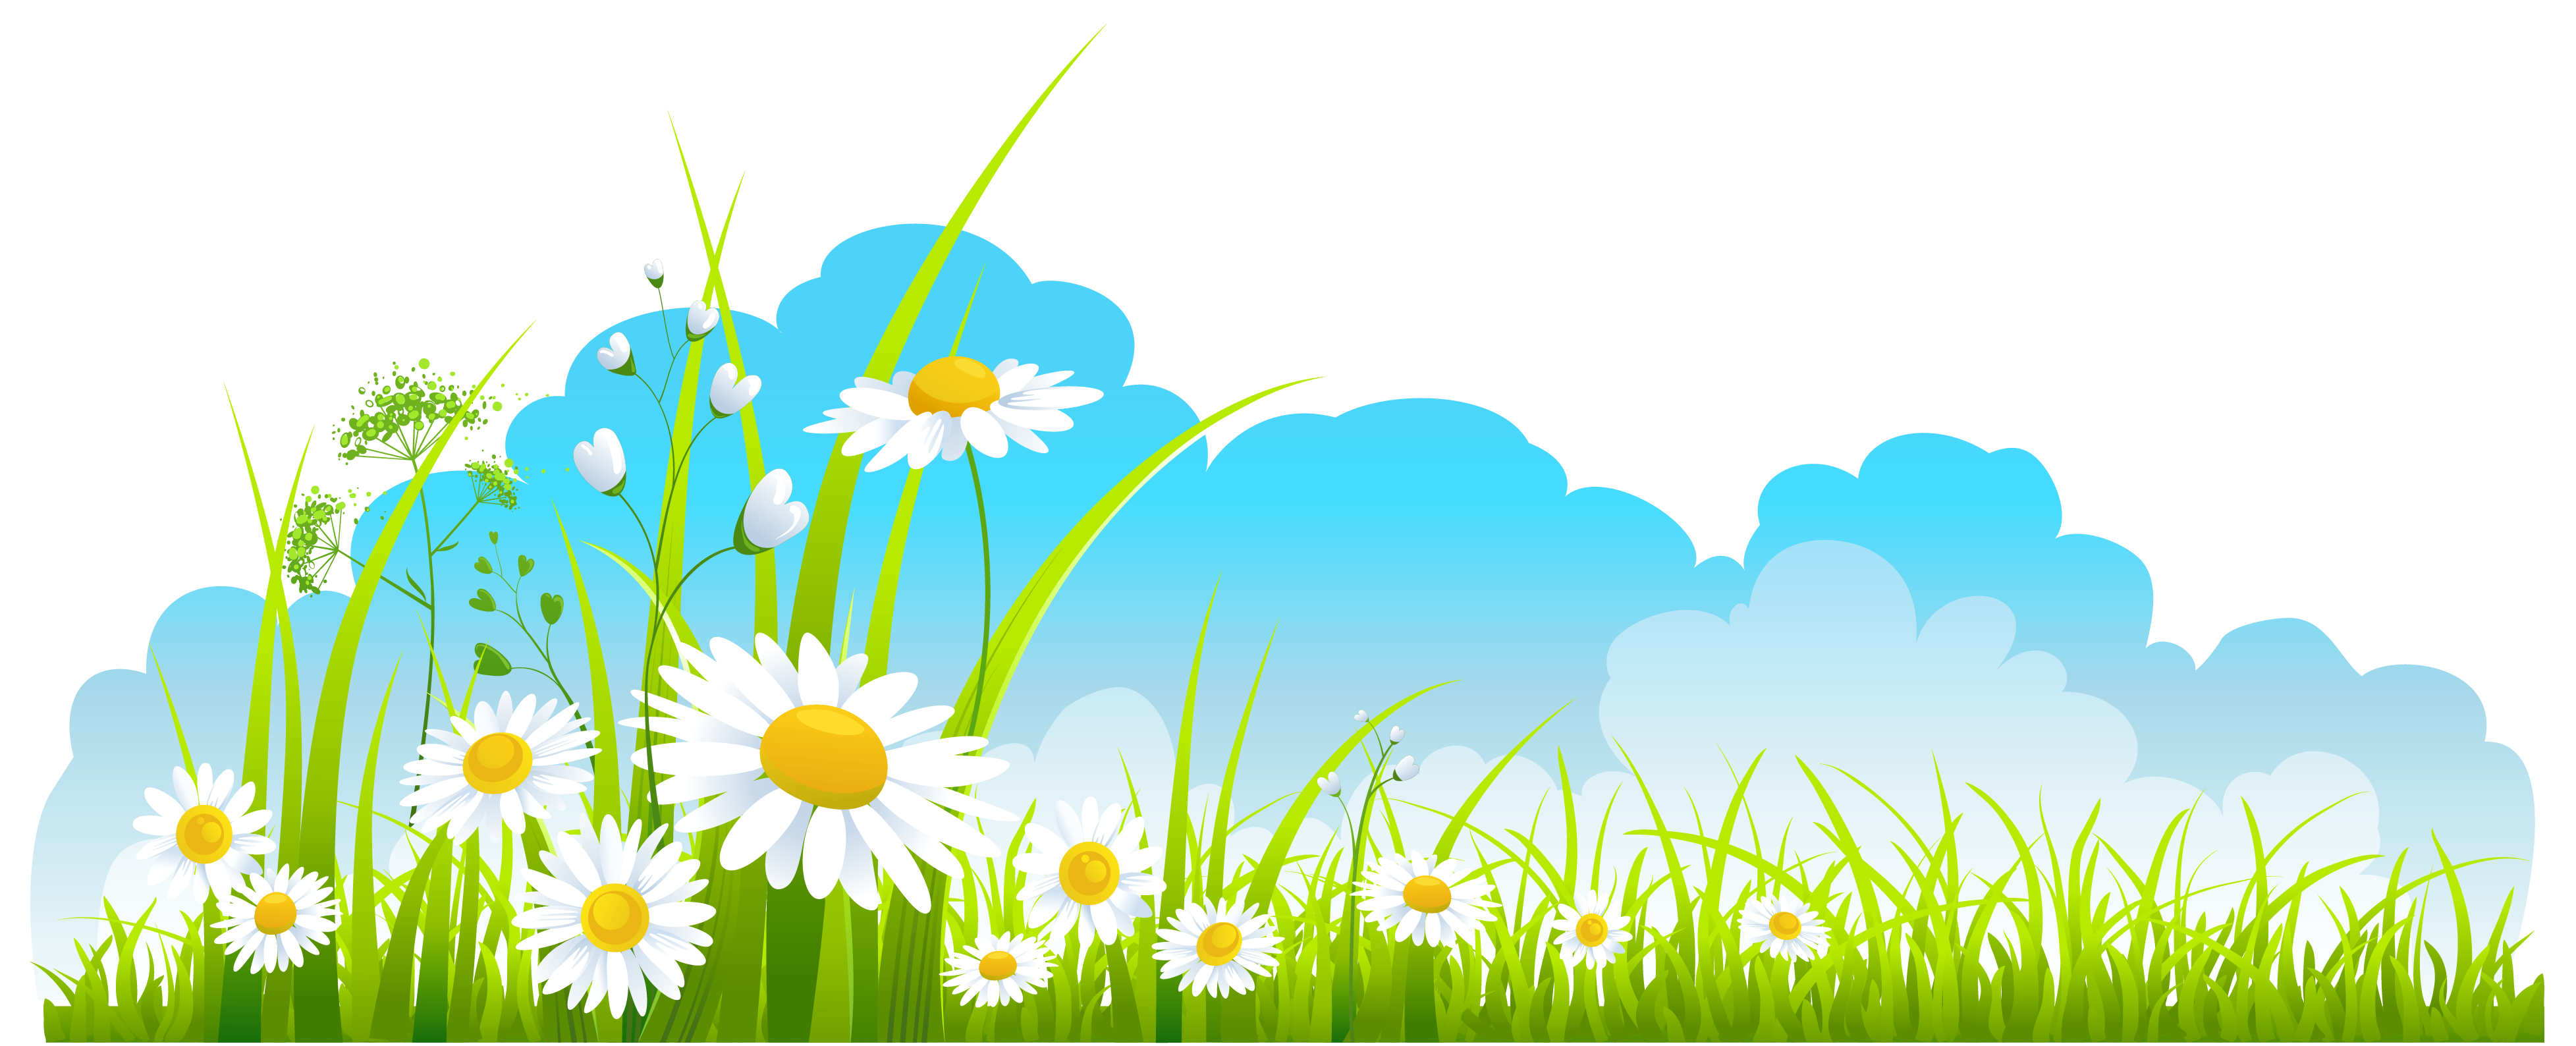 Spring Clipart Free & Look At Clip Art Images.